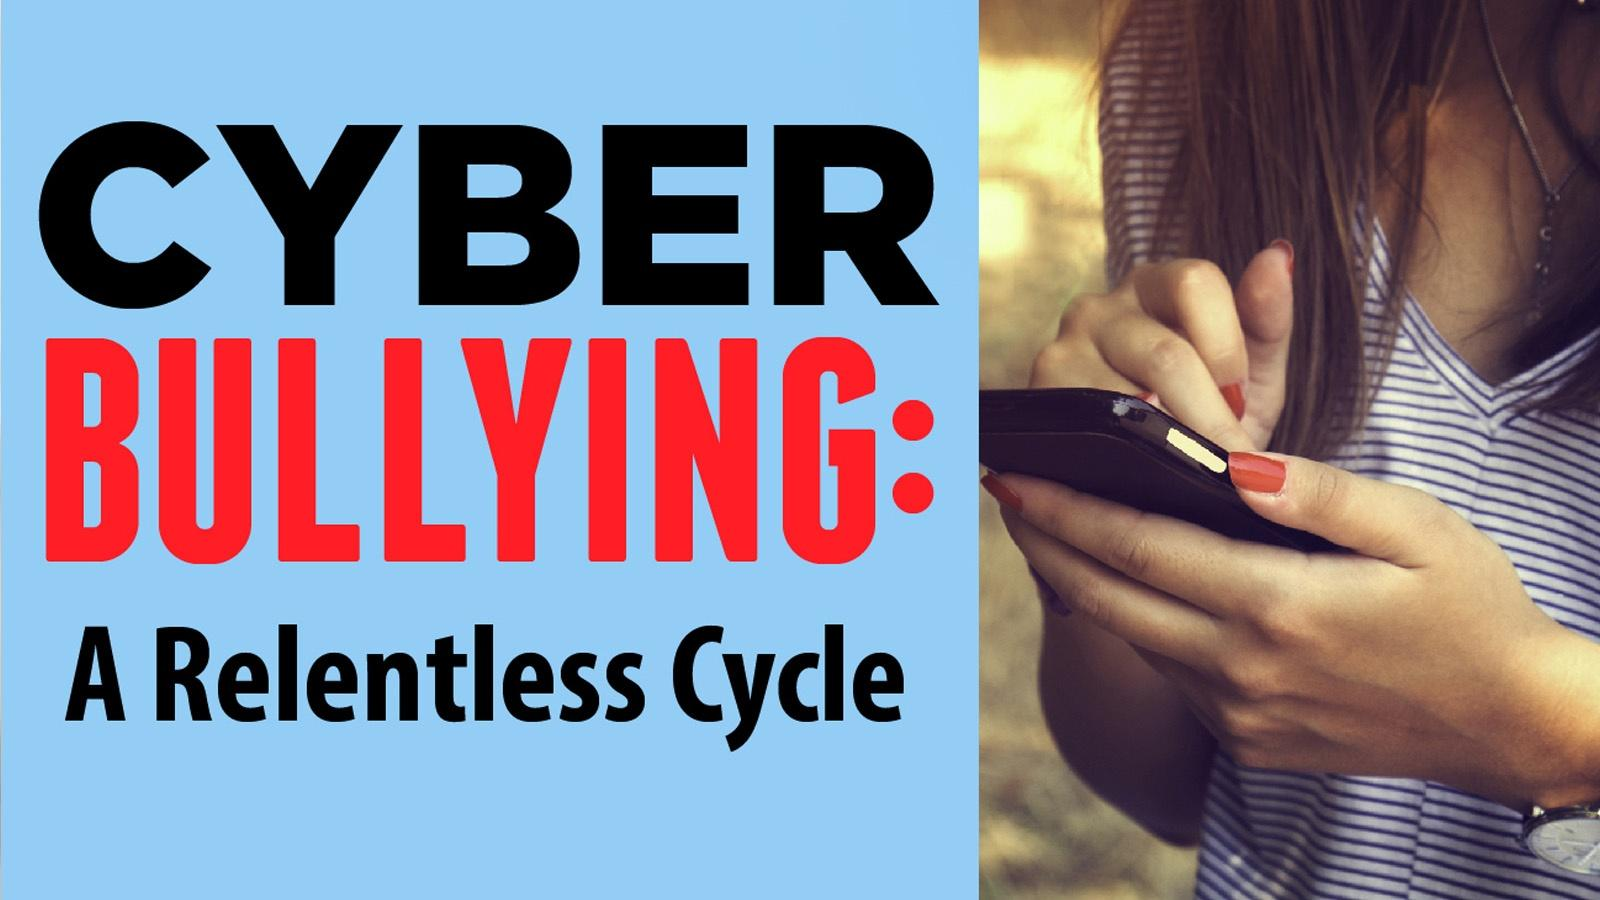 Cyberbullying: A Relentless Cycle